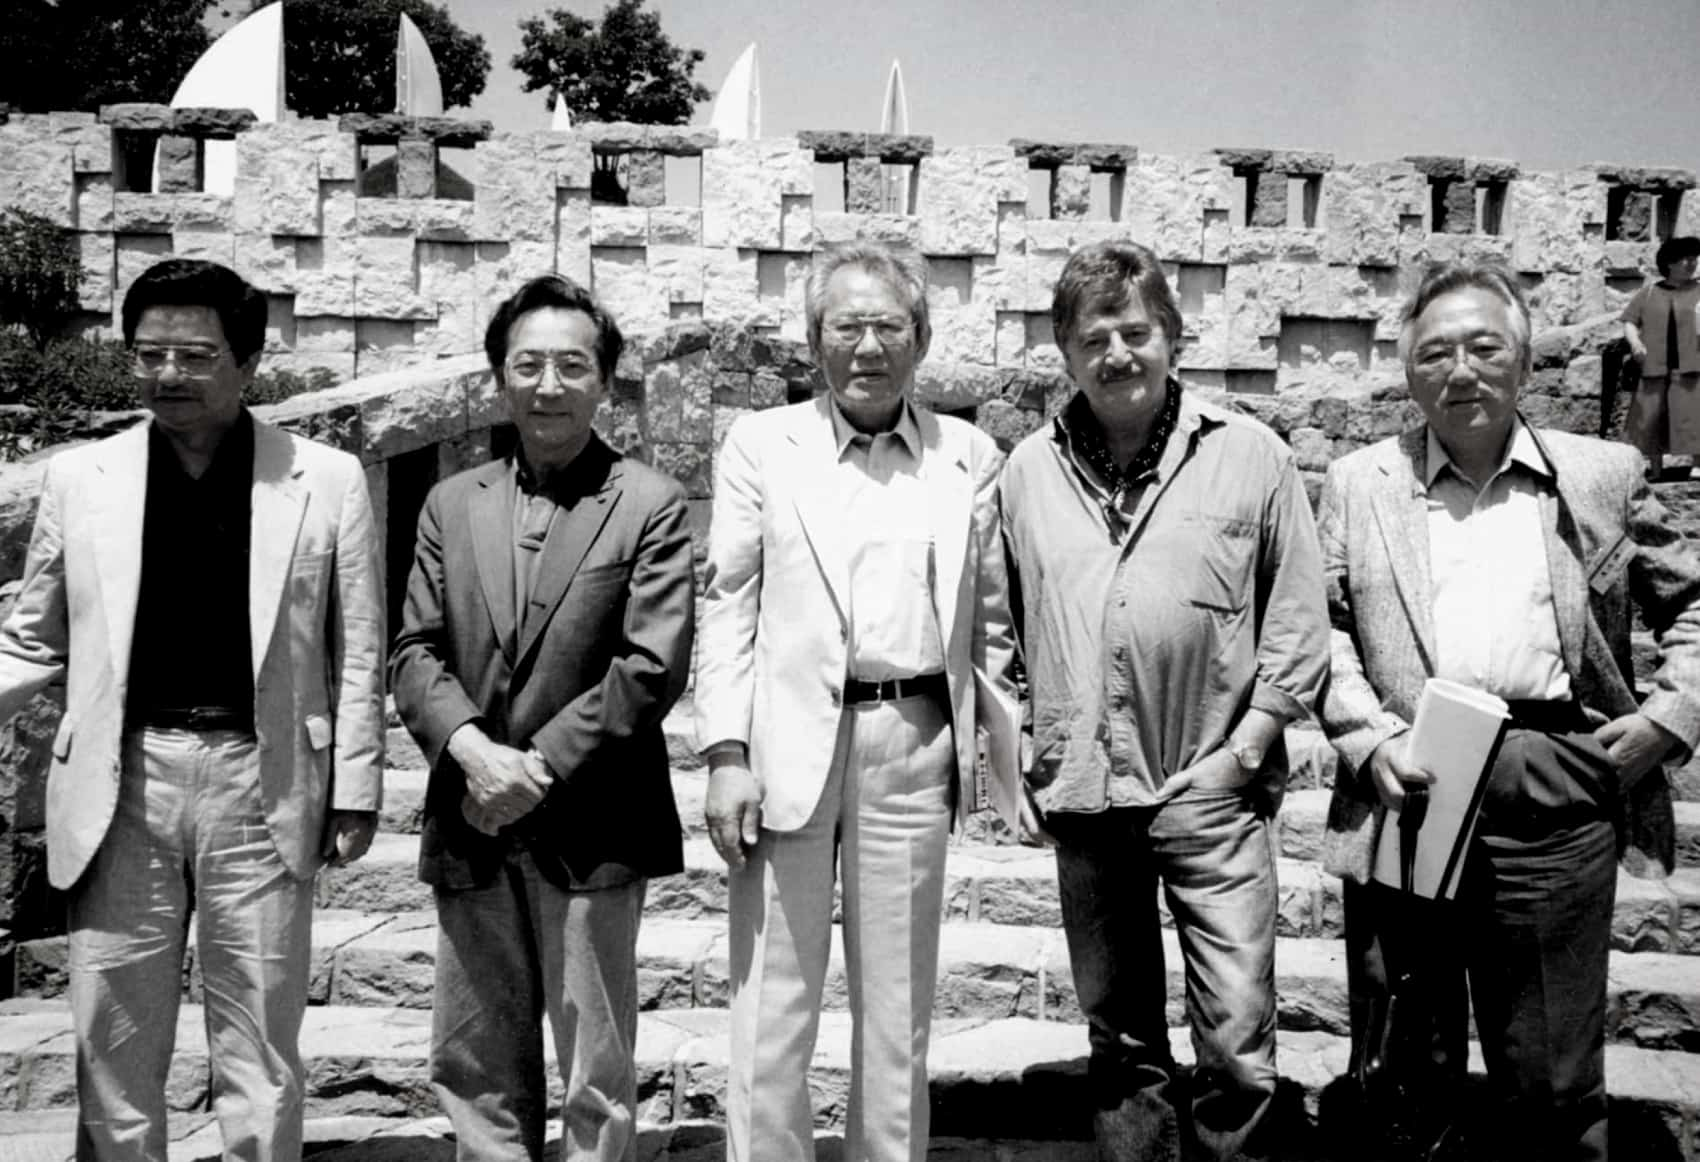 Pacific Composers Conference participants (from left to right): Eugene Lee, Chou Wen-chung, Isang Yun, Peter Sculthorpe, and Joji Yuasa